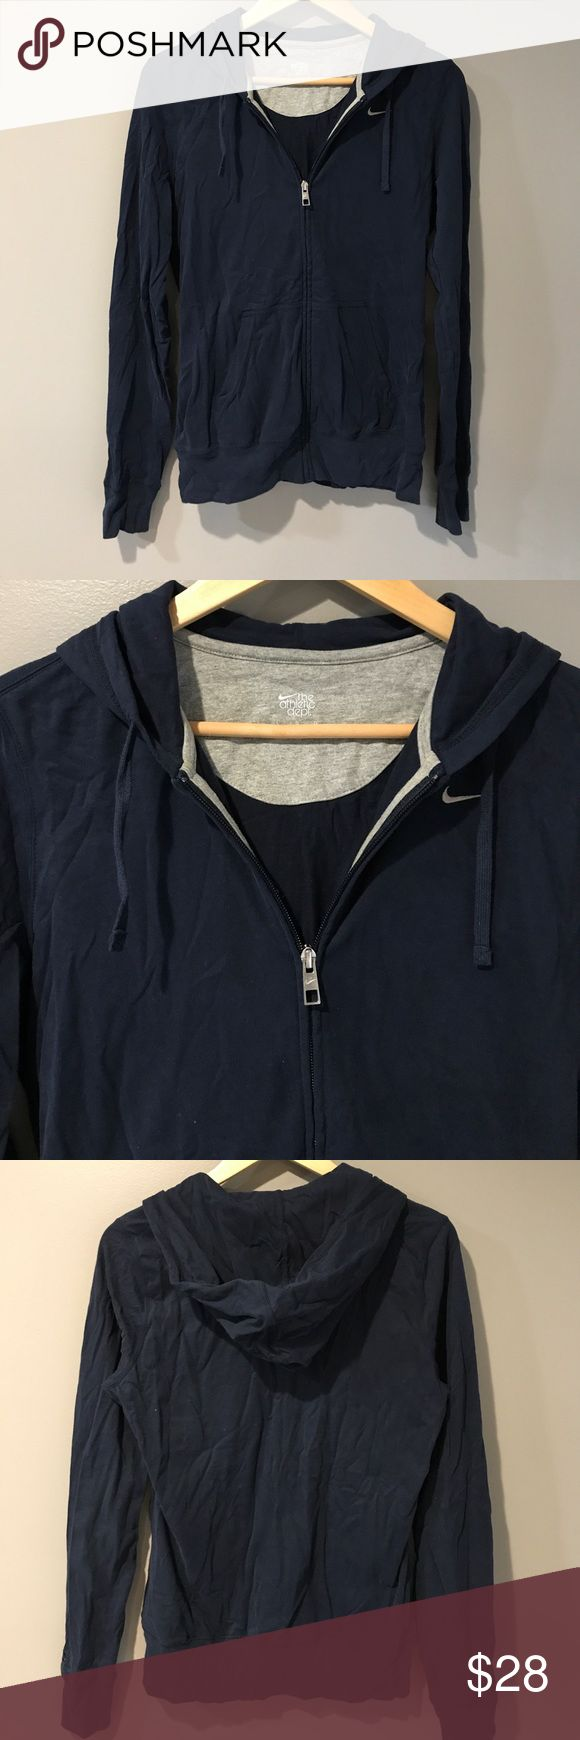 NIKE 100% Cotton Navy Hoodie  L MAKE OFFER!!!  NIKE 💯 Cotton Navy Hoodie Size L Orher than needing a steam, good to very good condition. Navy Nike Tops Sweatshirts & Hoodies